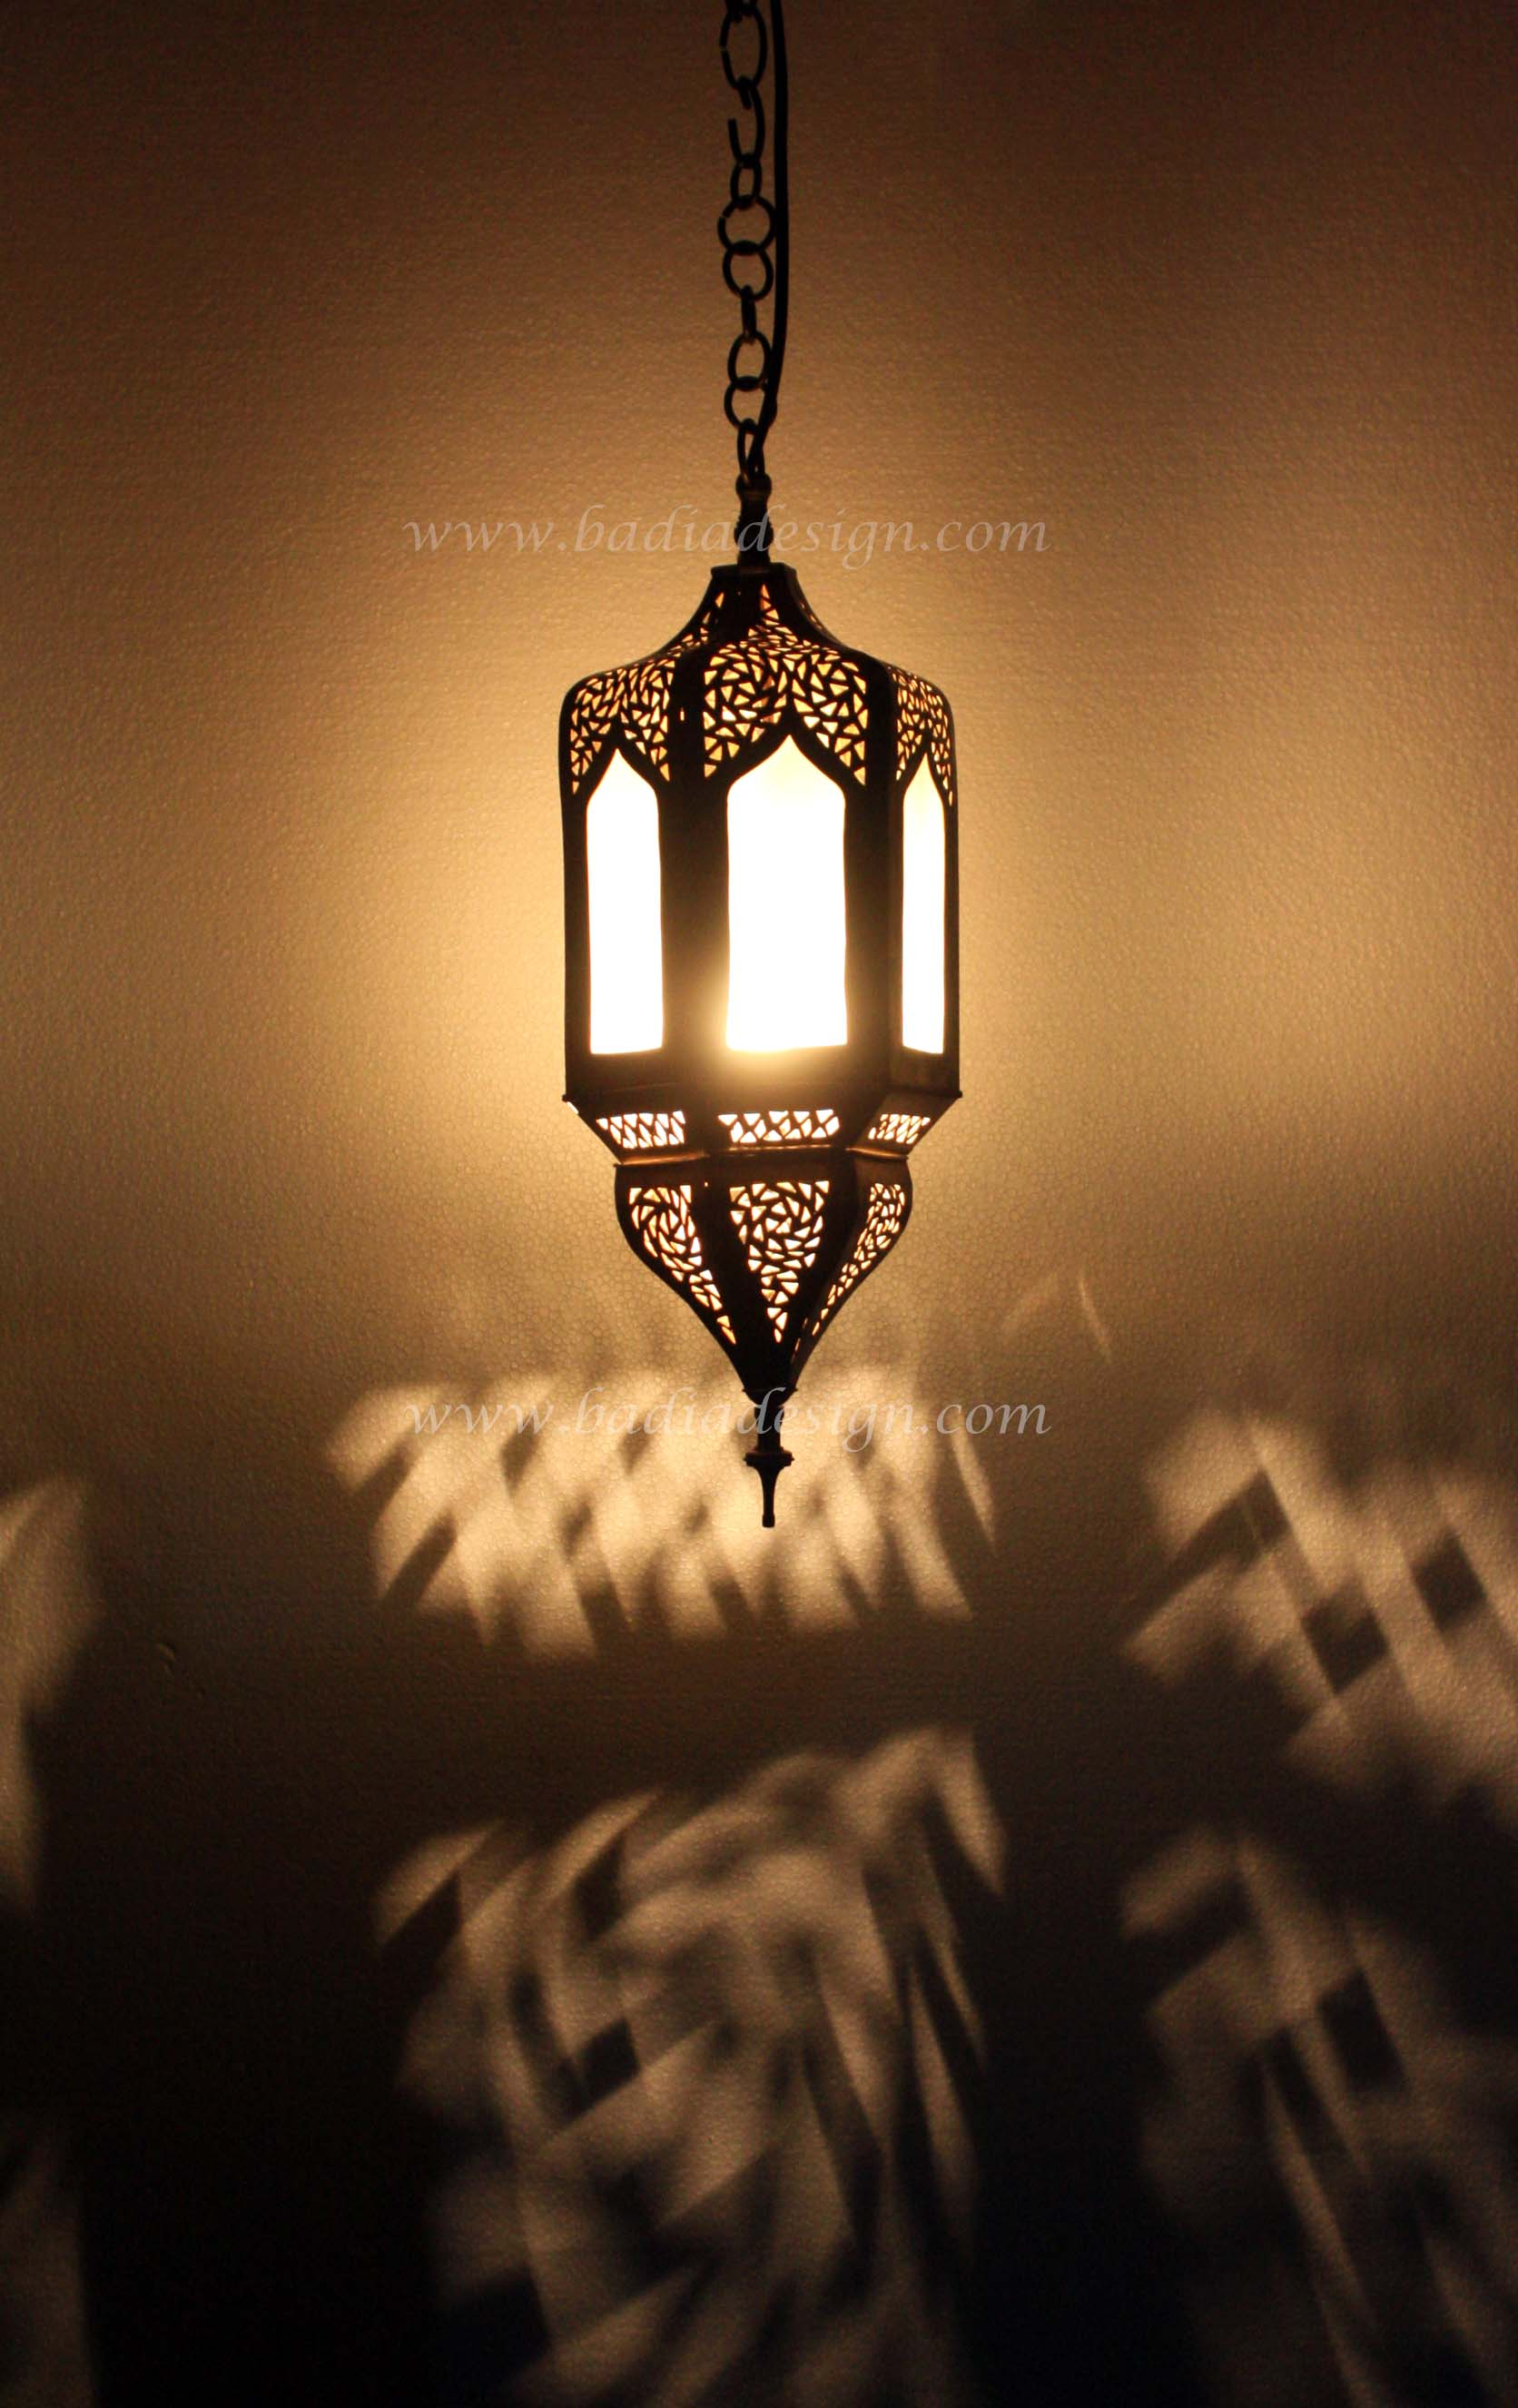 moroccan-lighting-san-jose.jpg